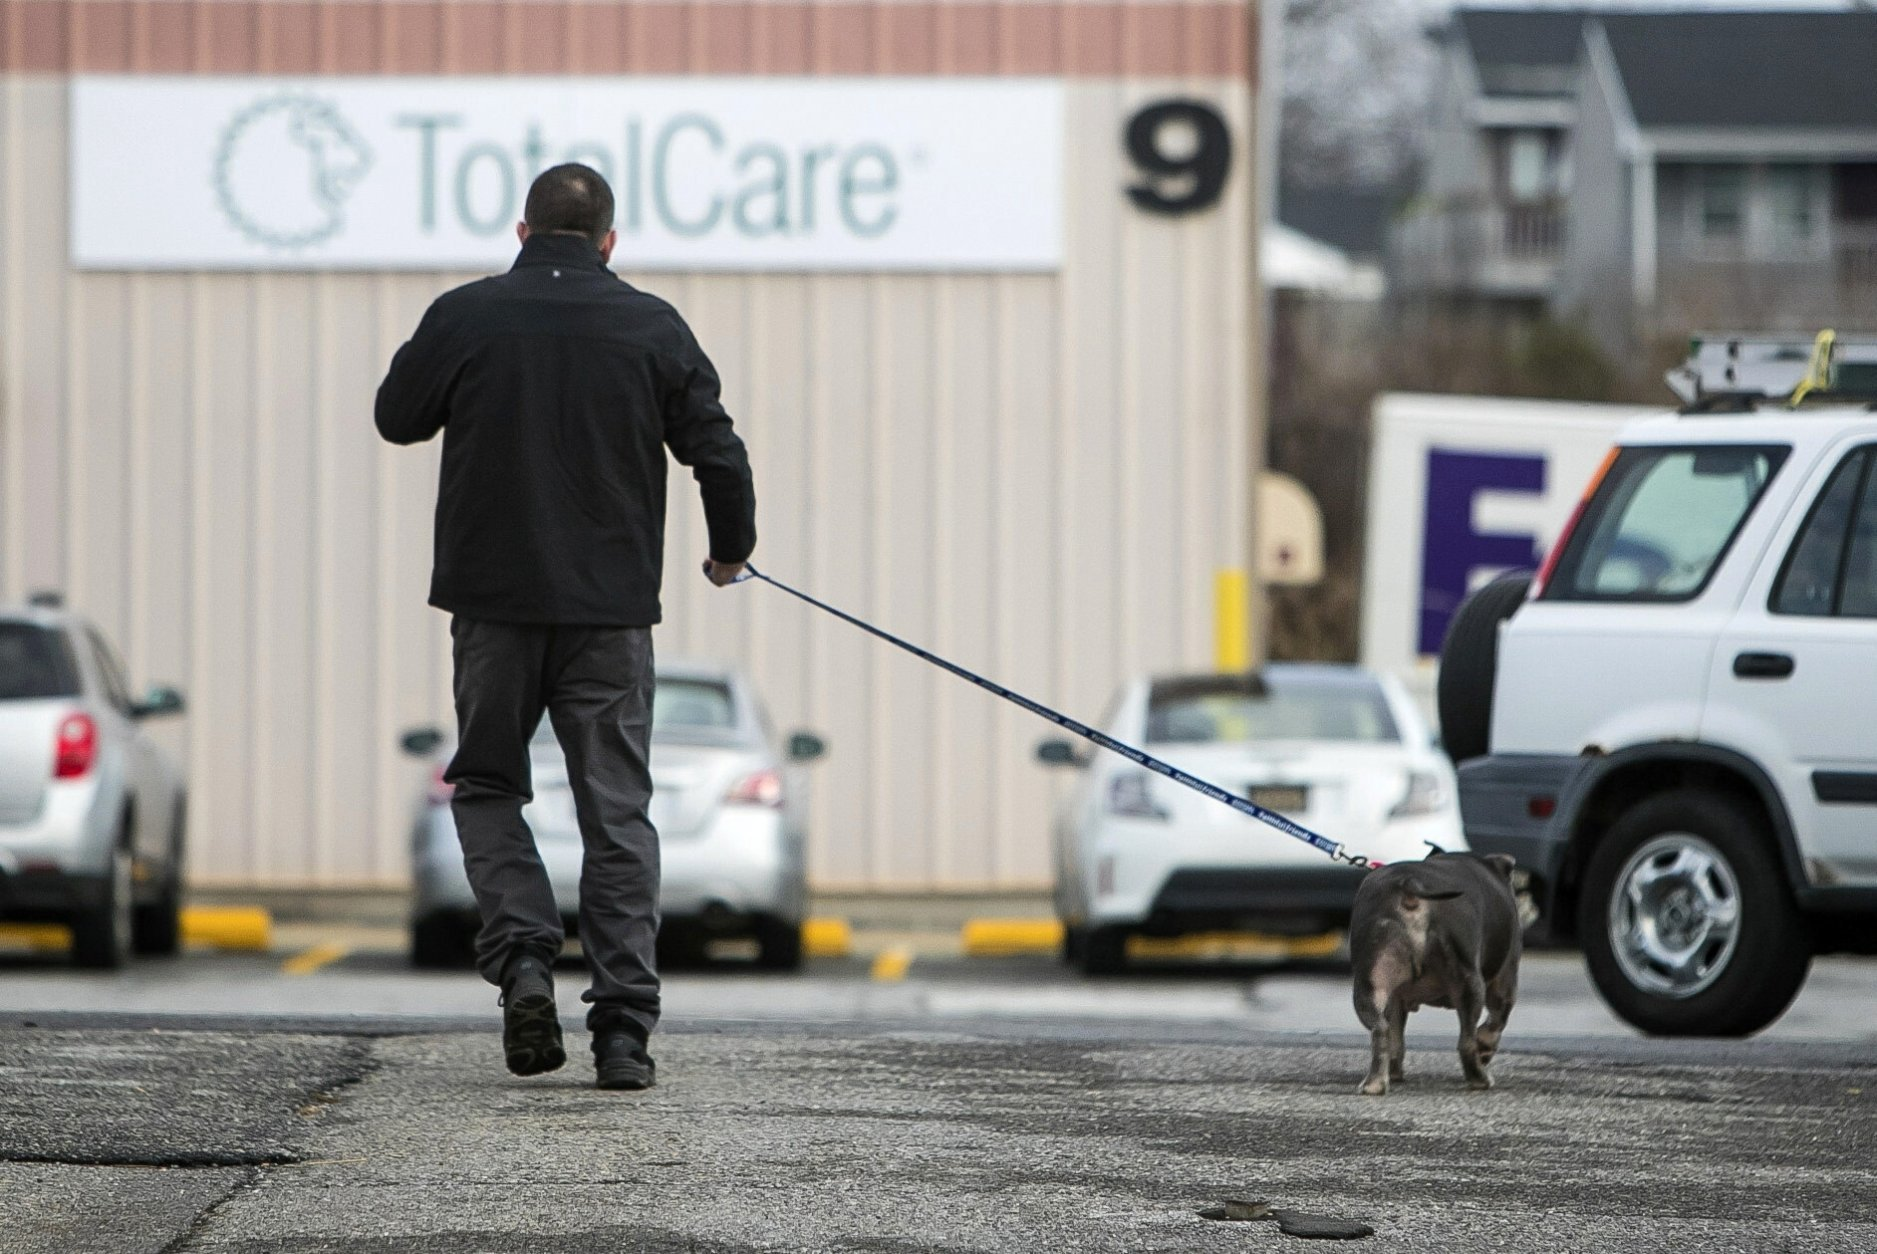 In this Jan. 8, 2019 photo, Pete Buchmann walks a new dog he is fostering named Mateo after his dog, Buster, died, in Elsmere, Del. Buchmann, who used to be homeless once walked 5 miles daily to visit Buster at Faithful Friends Animal Society, where he entrusted the dog to. (Suchat Pederson/The News Journal via AP)